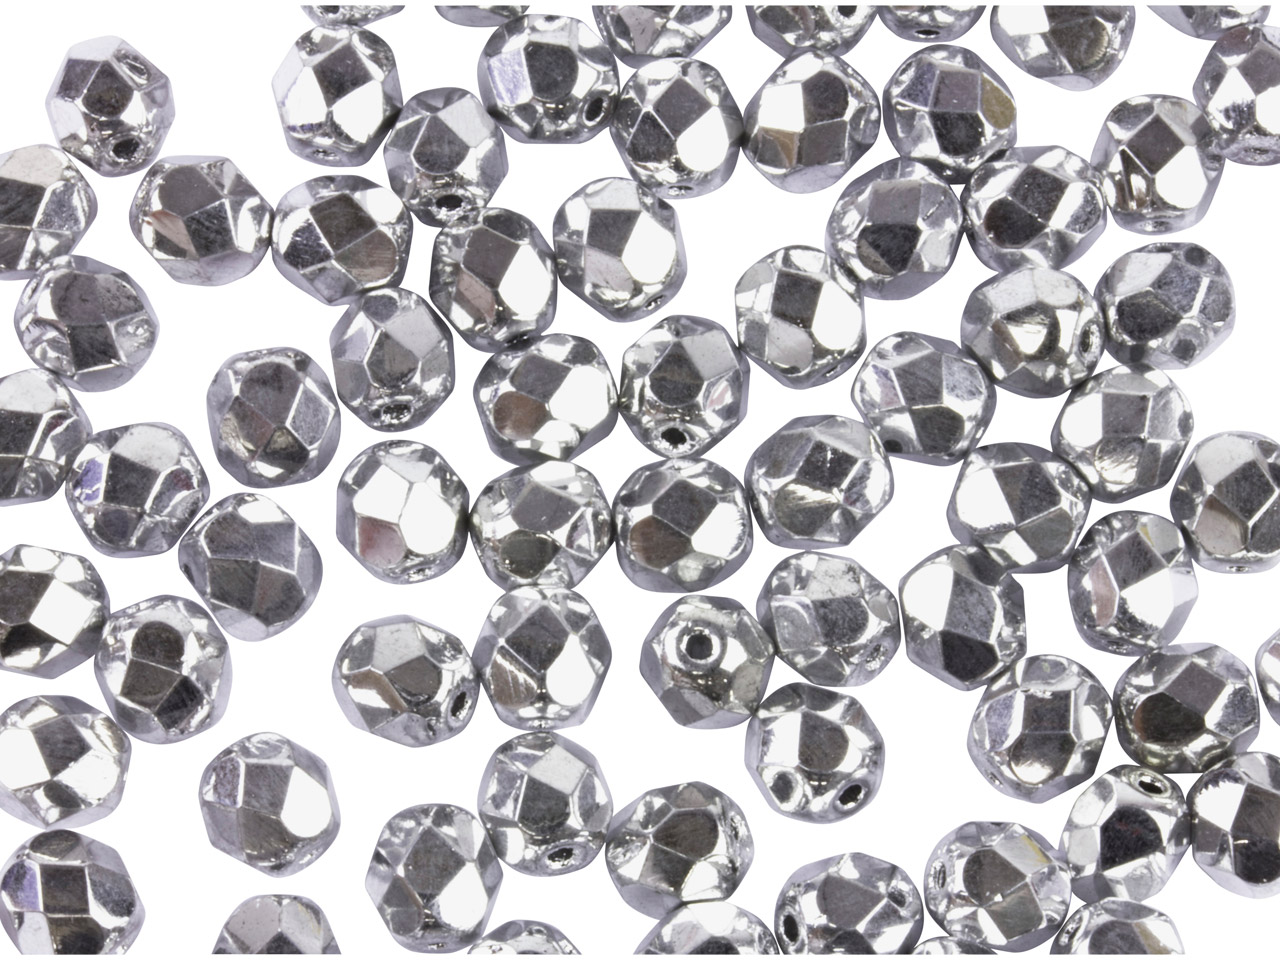 Preciosa 6mm Czech Fire Polished   Glass Beads Crystal Sil,           Pack of 100,